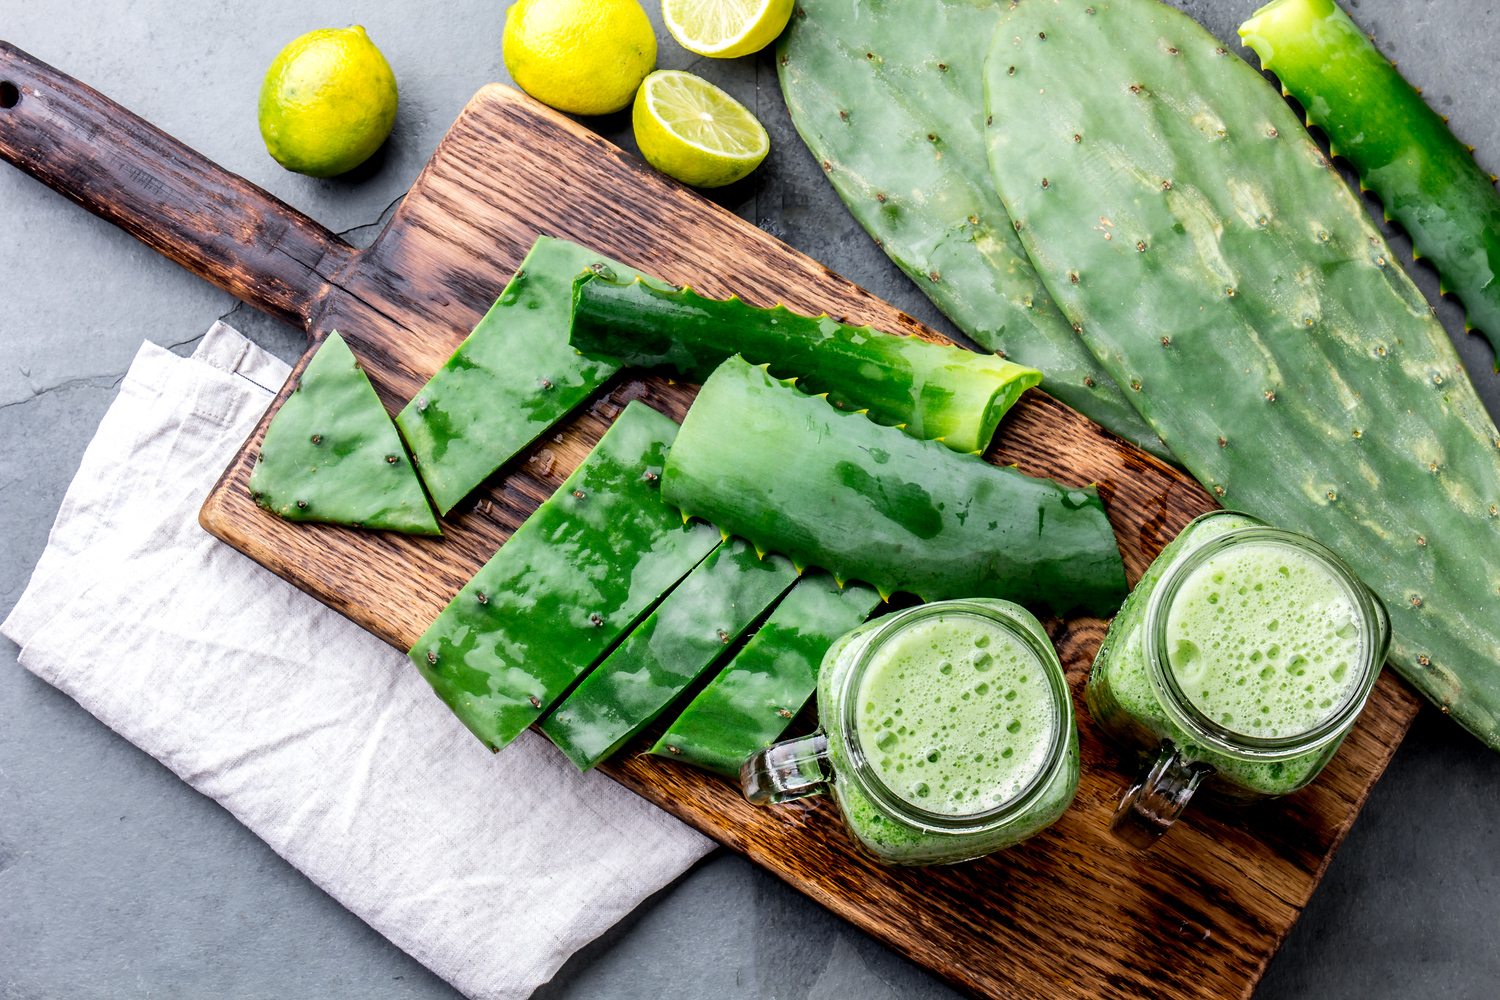 Jugo verde or green juice in Mexico with cactus is a popular smoothie